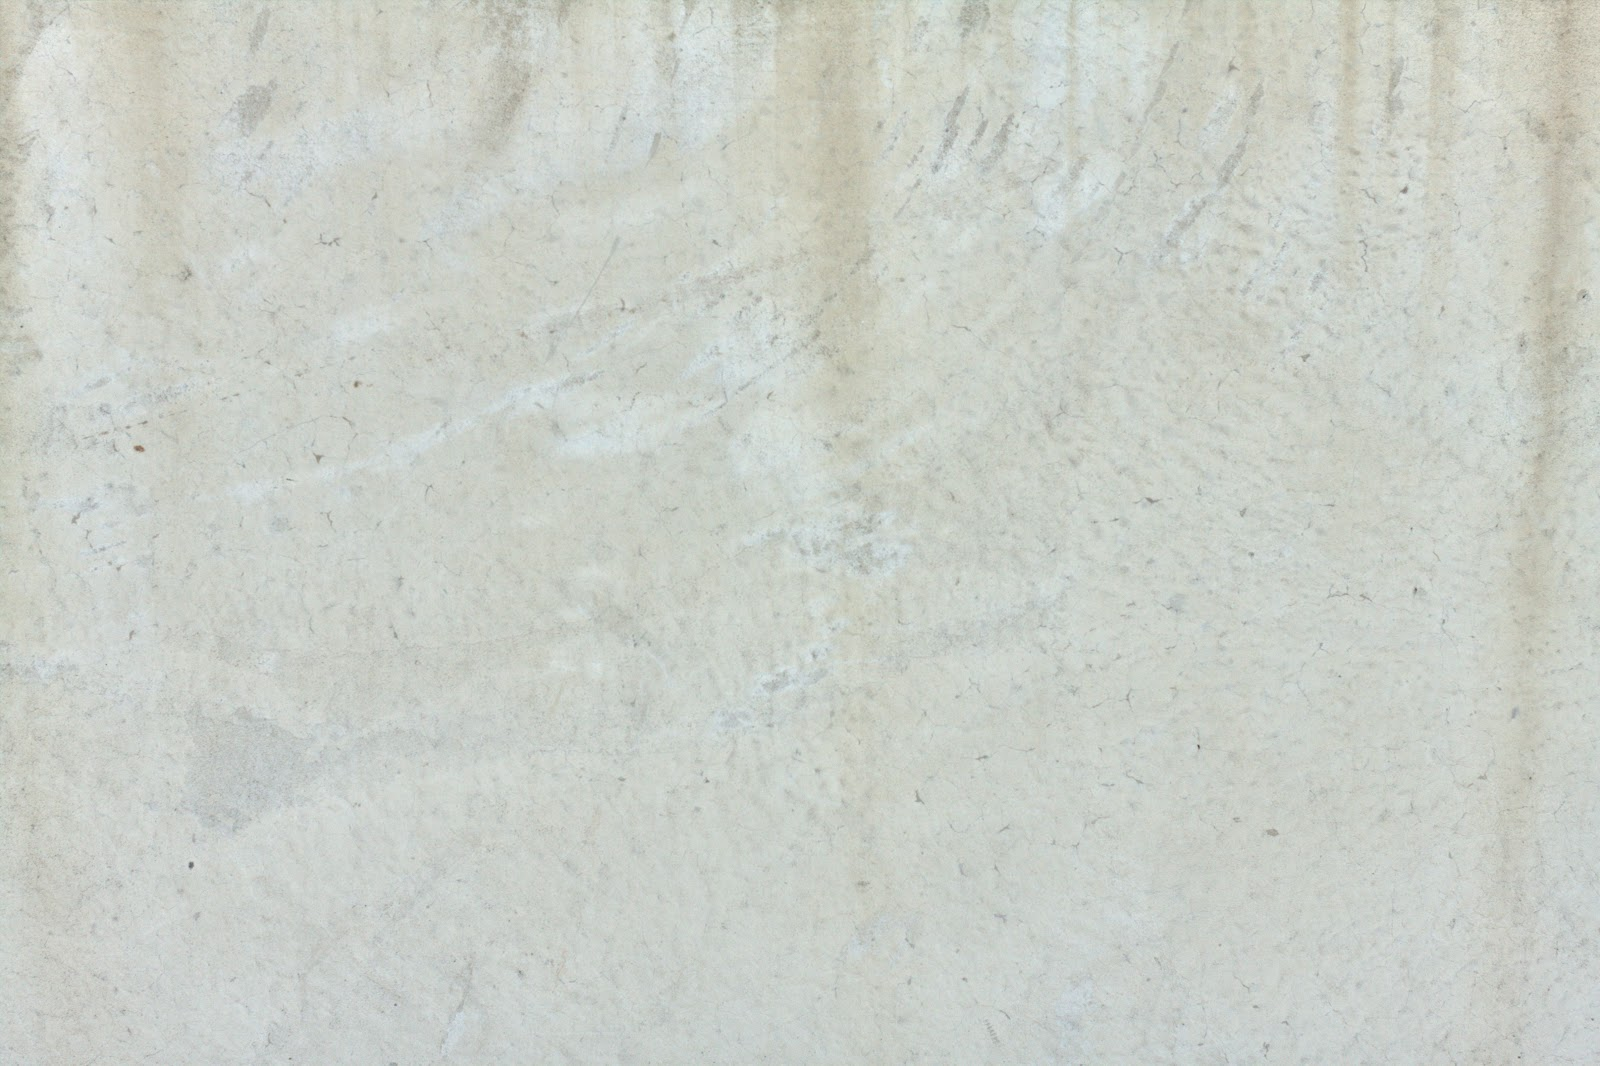 Concrete white wash dirty wall texture 4770x3178